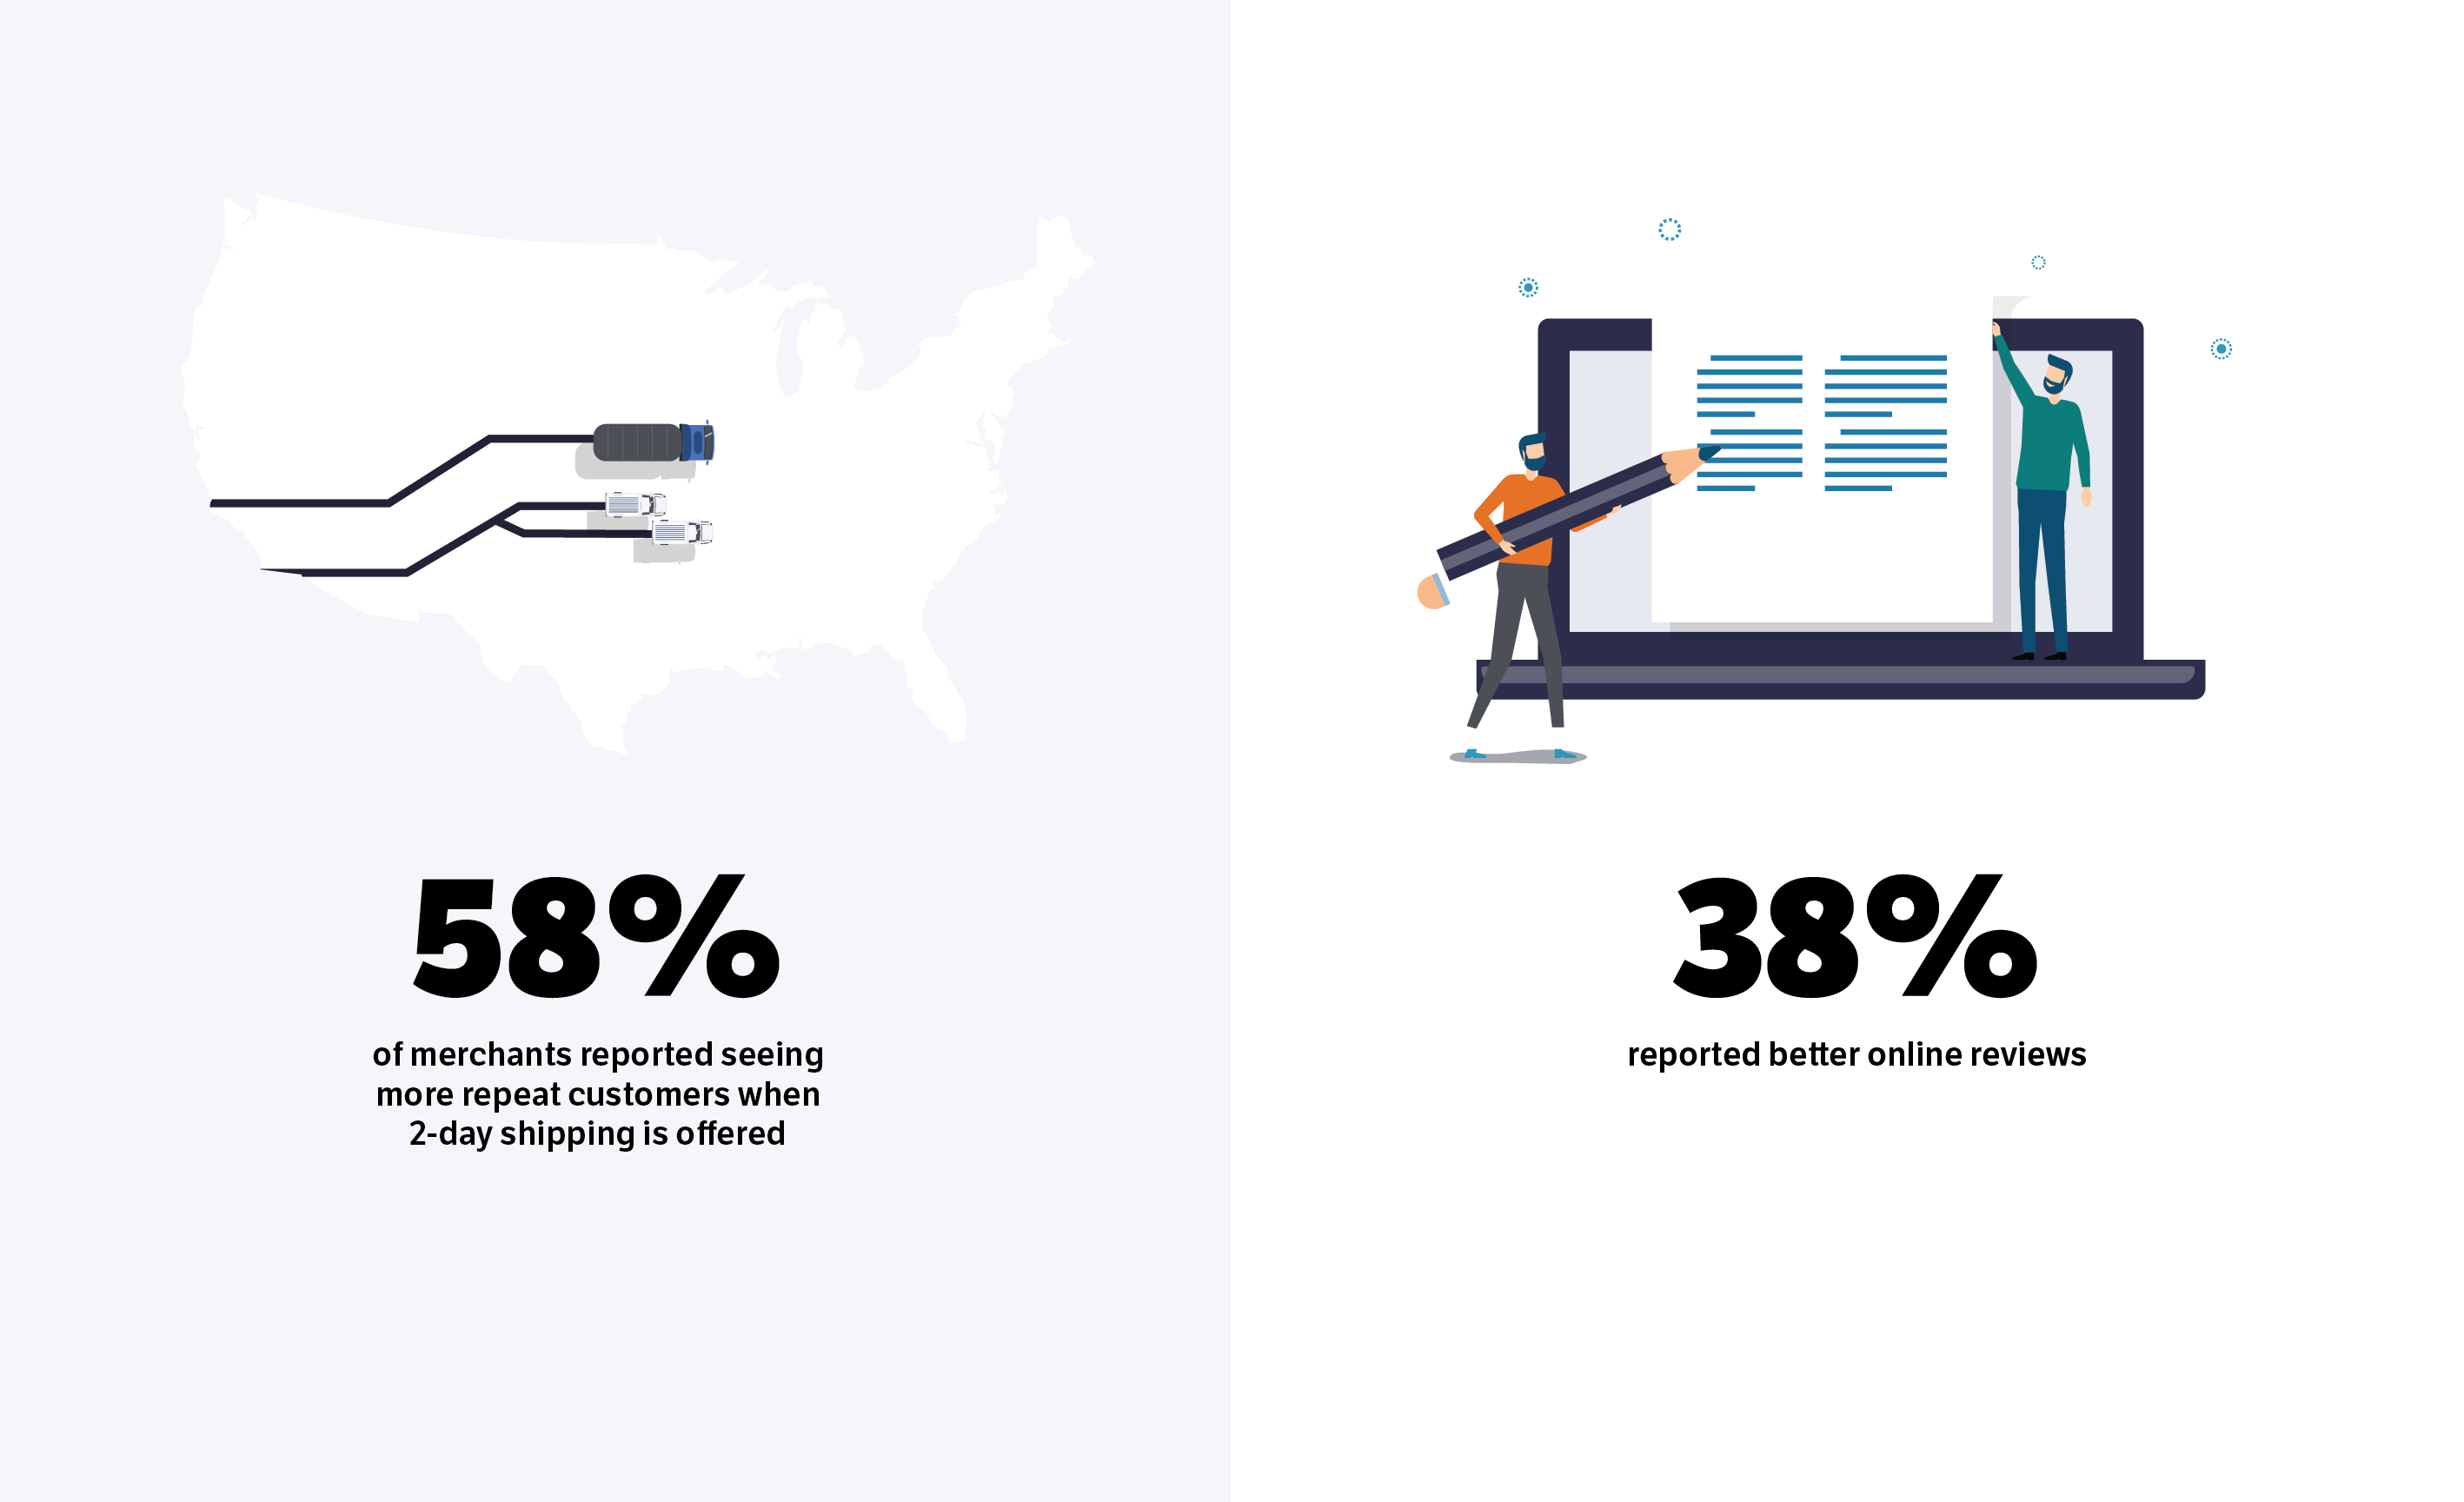 58% of merchants see more repeat customers with 2-day shipping, 38% see better online reviews